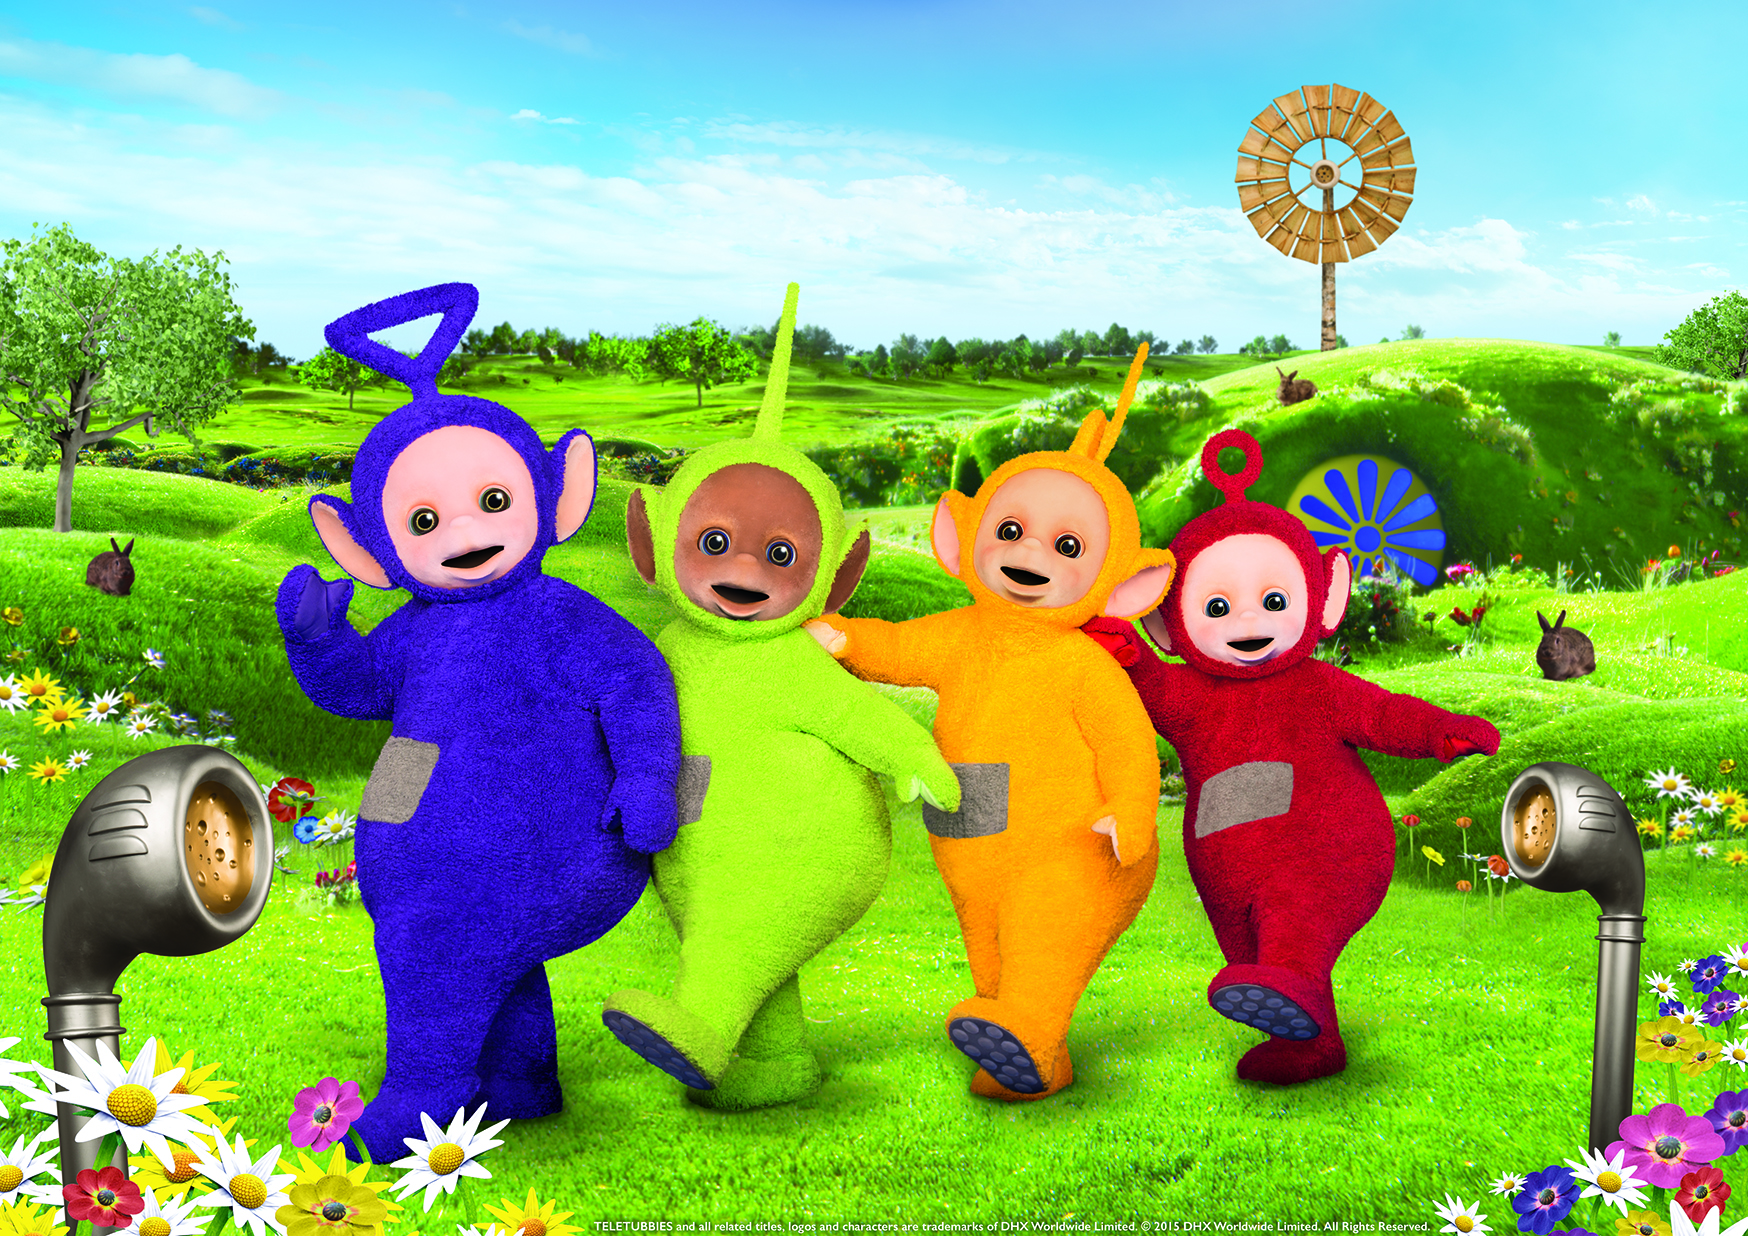 First look at the new Teletubbies reboot